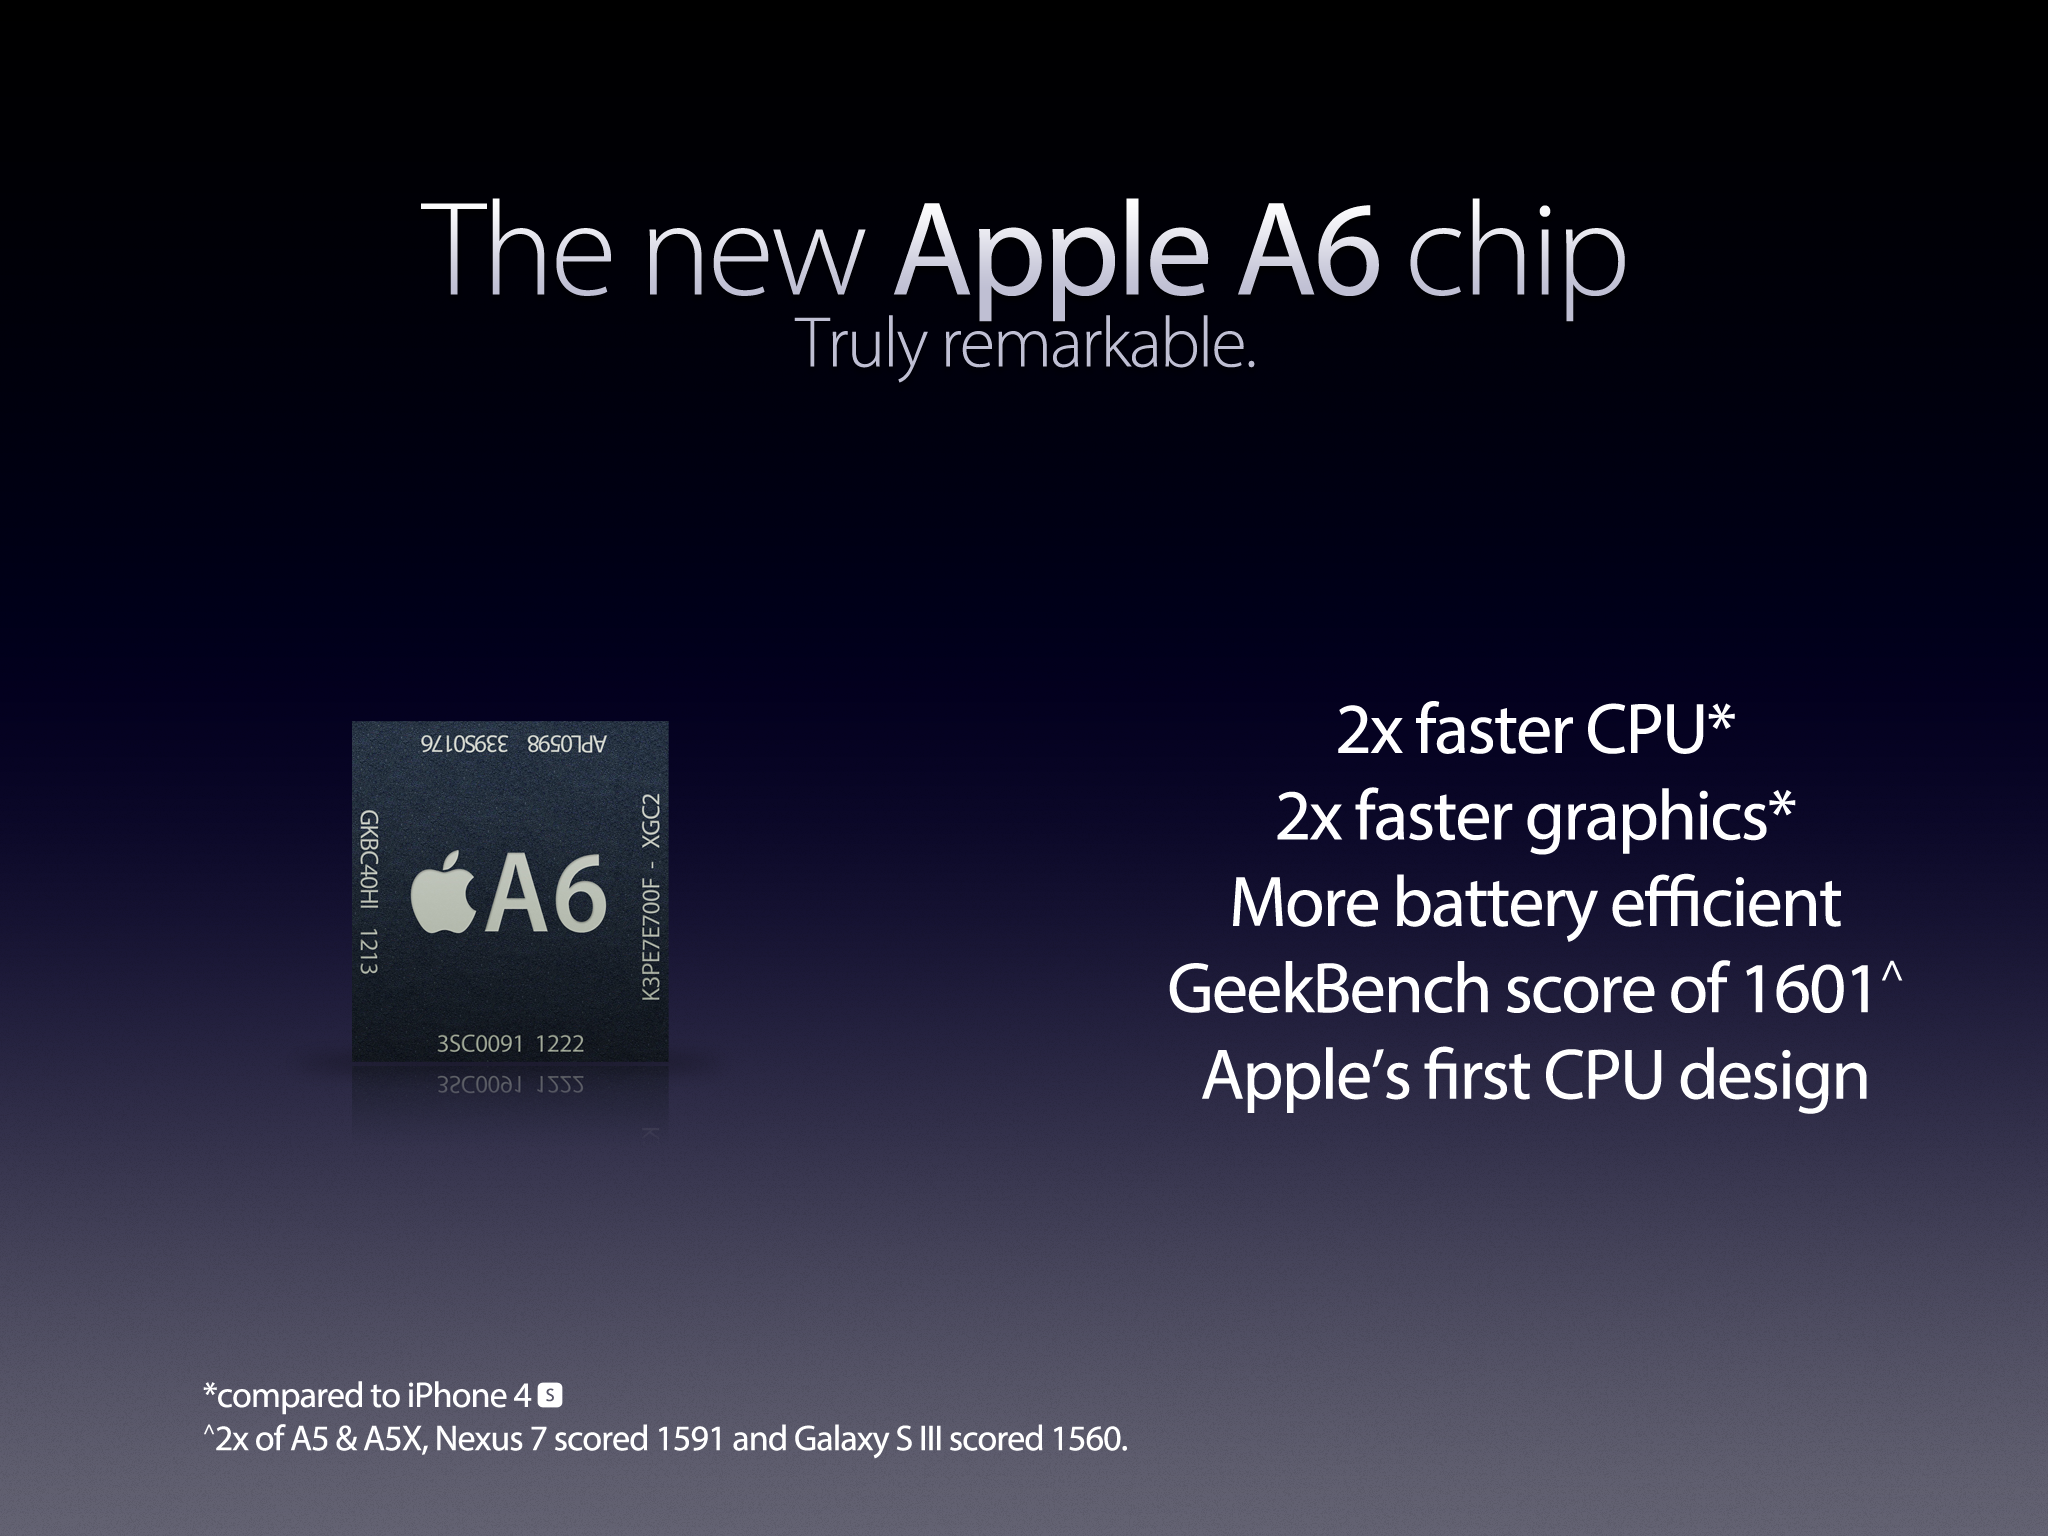 The new Apple A6